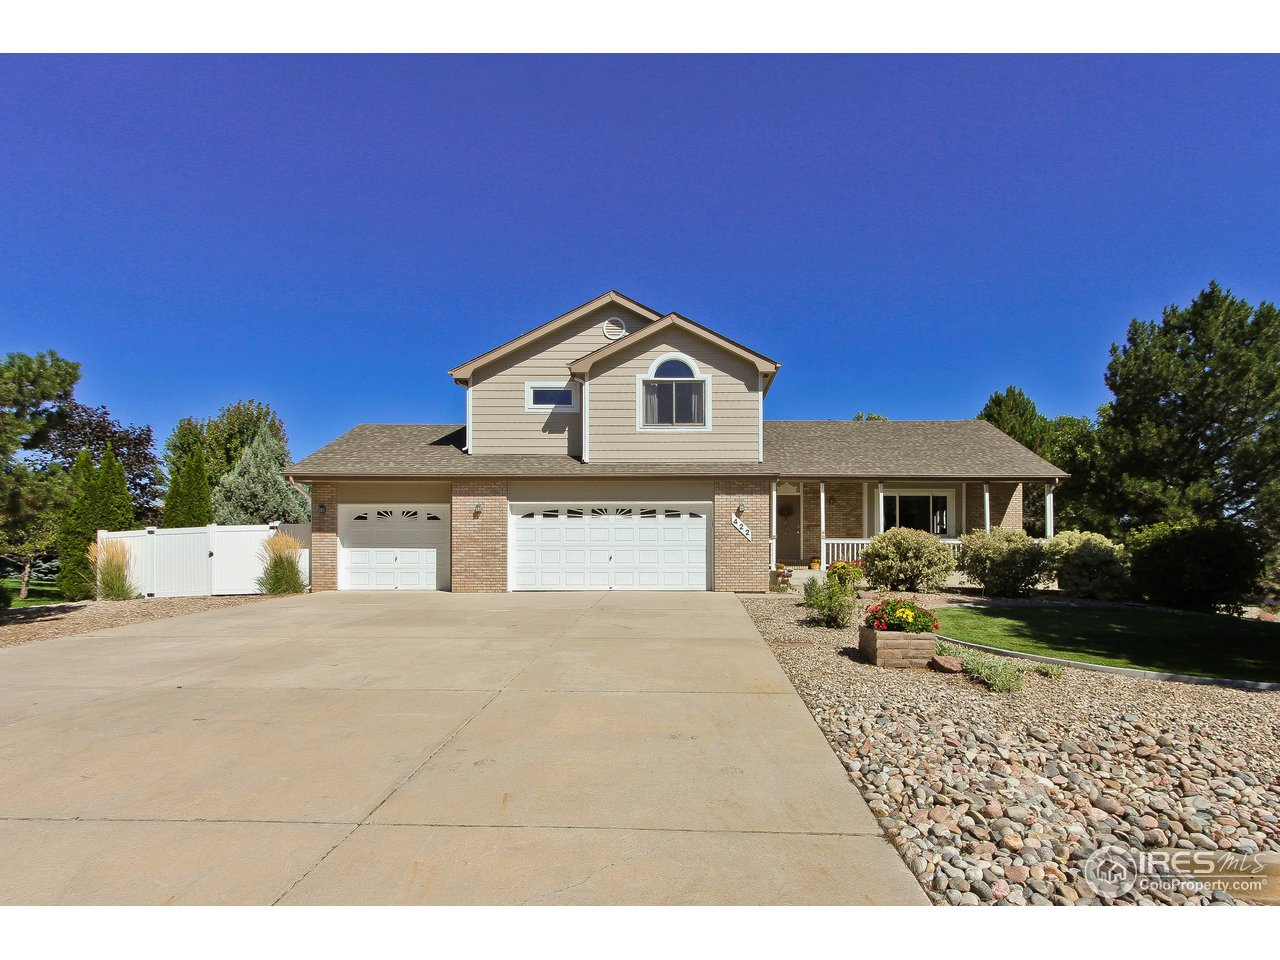 422 Hillsboro Ct N, Fort Collins CO 80525